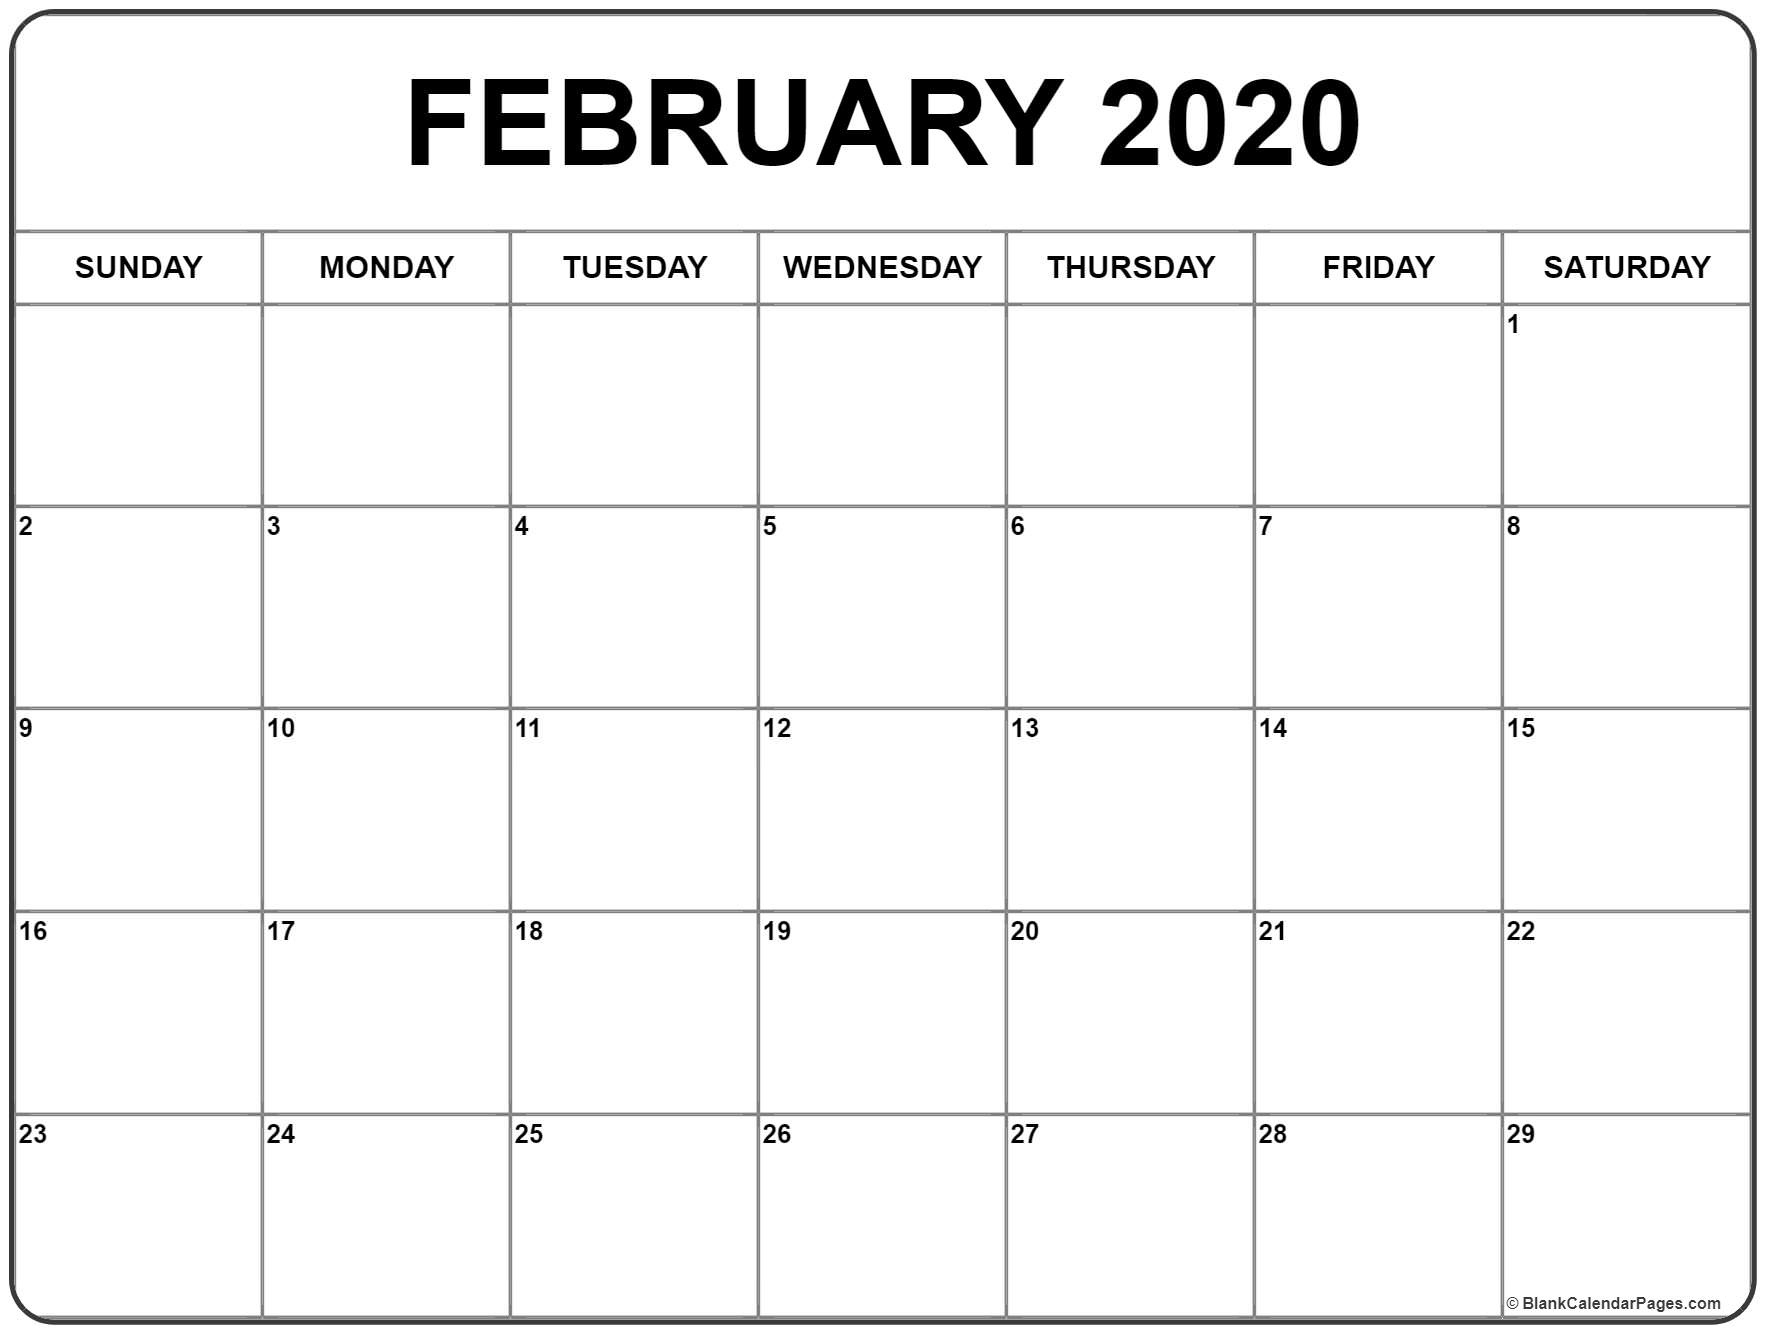 Calendar Of February 2020 In Africa » Creative Calendar Ideas